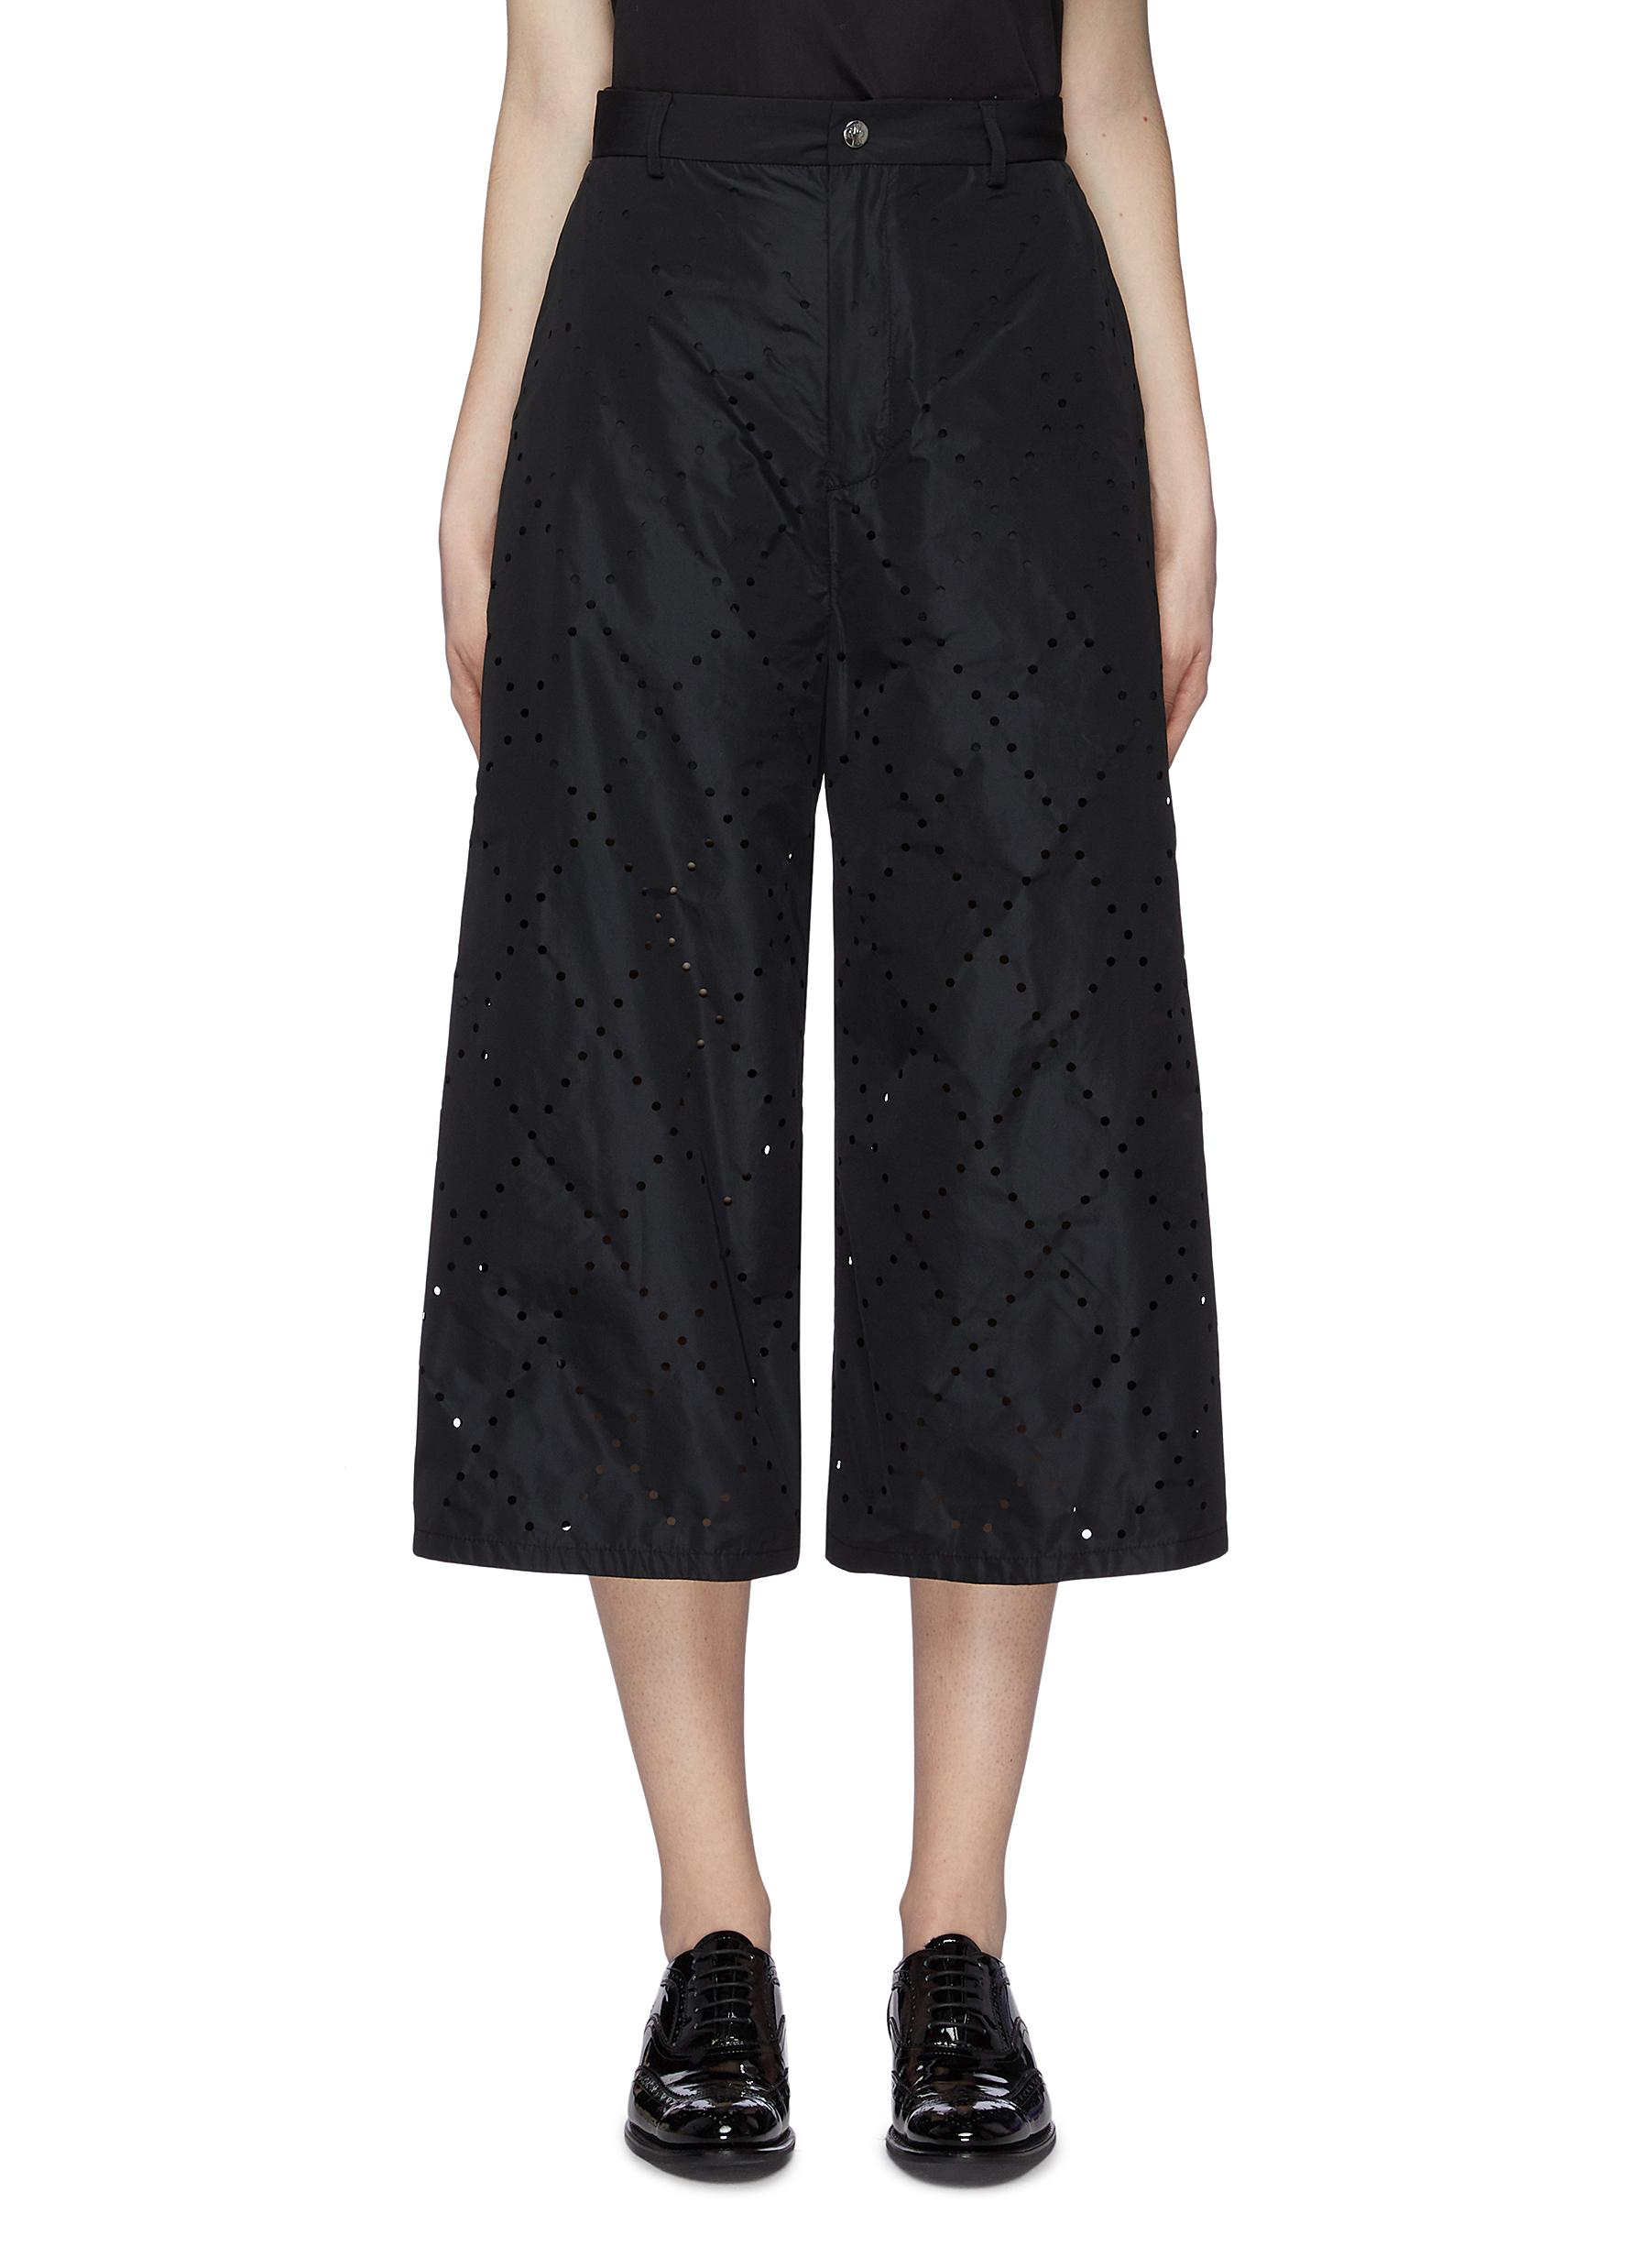 x Noir Kei Ninomiya geometric perforated culottes by Moncler Genius